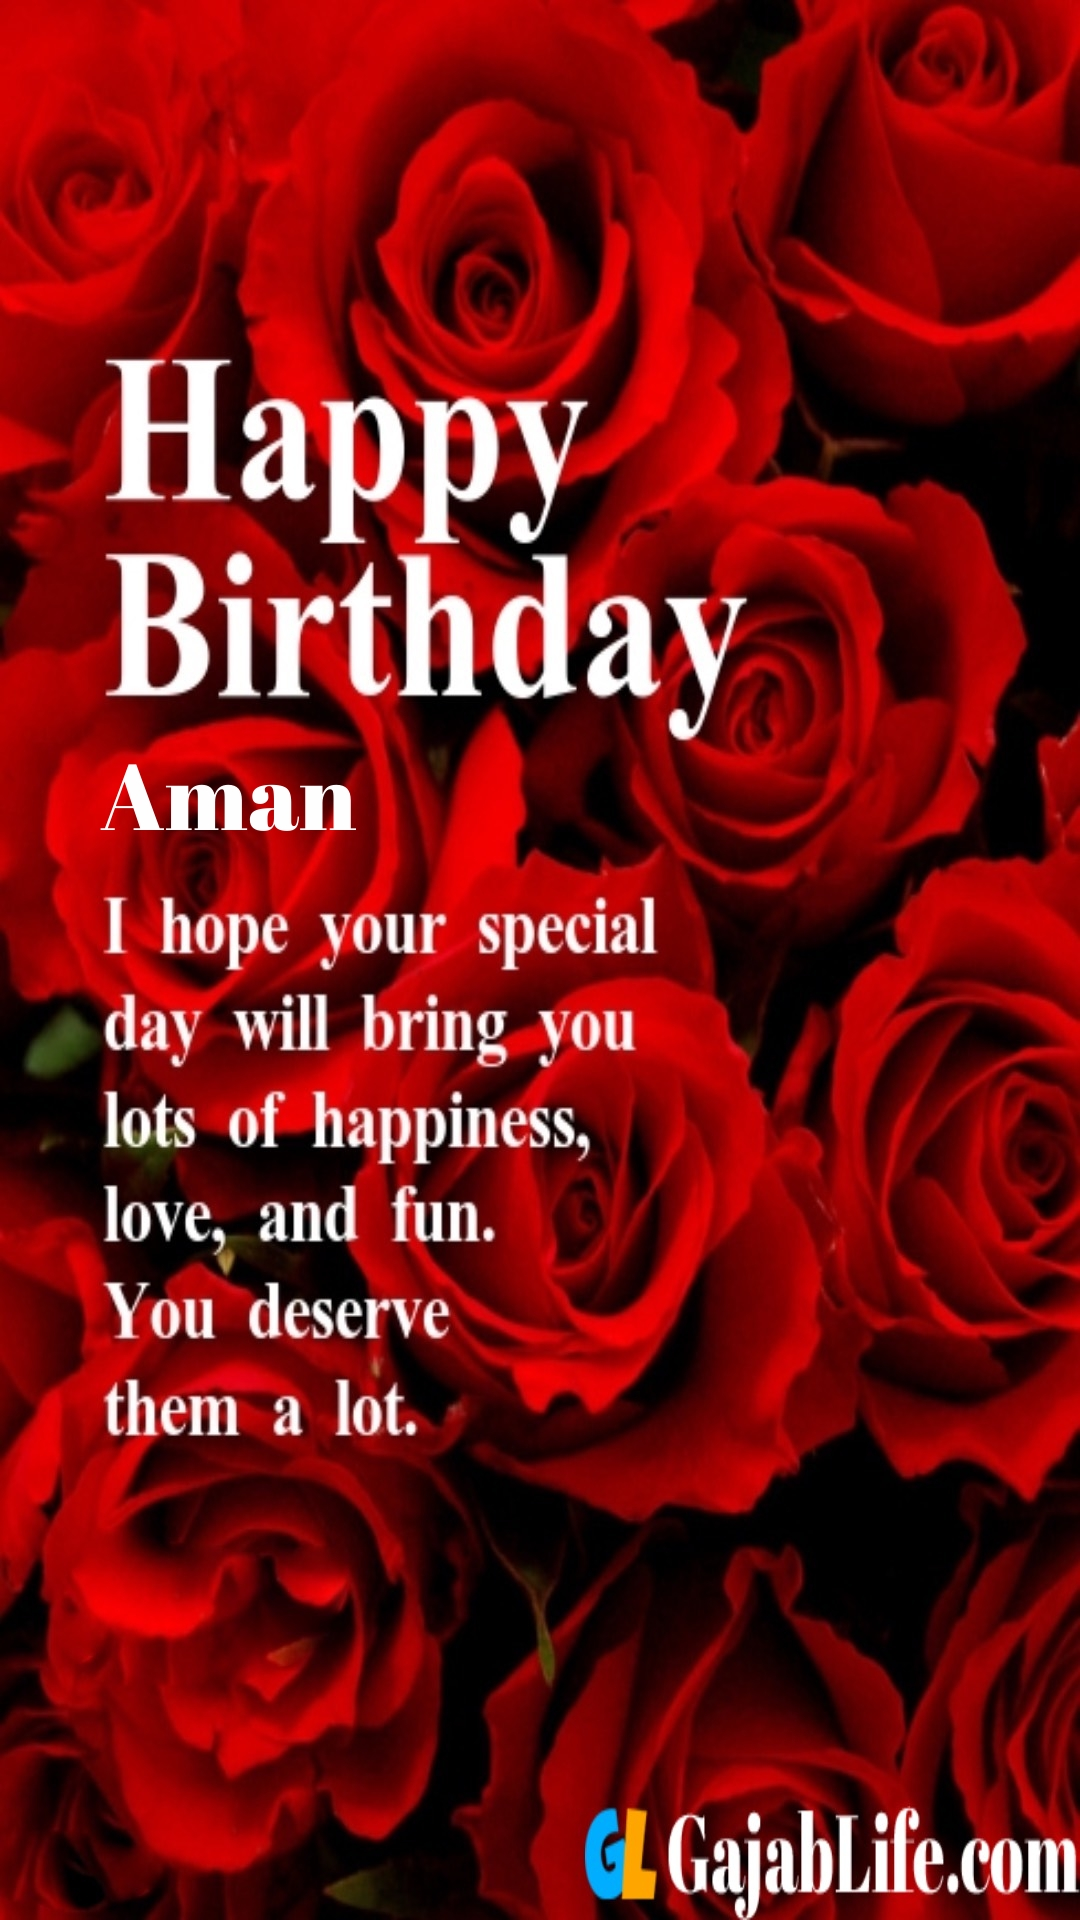 Aman Free Happy Birthday Cards With Name To download this image, create an account. aman free happy birthday cards with name